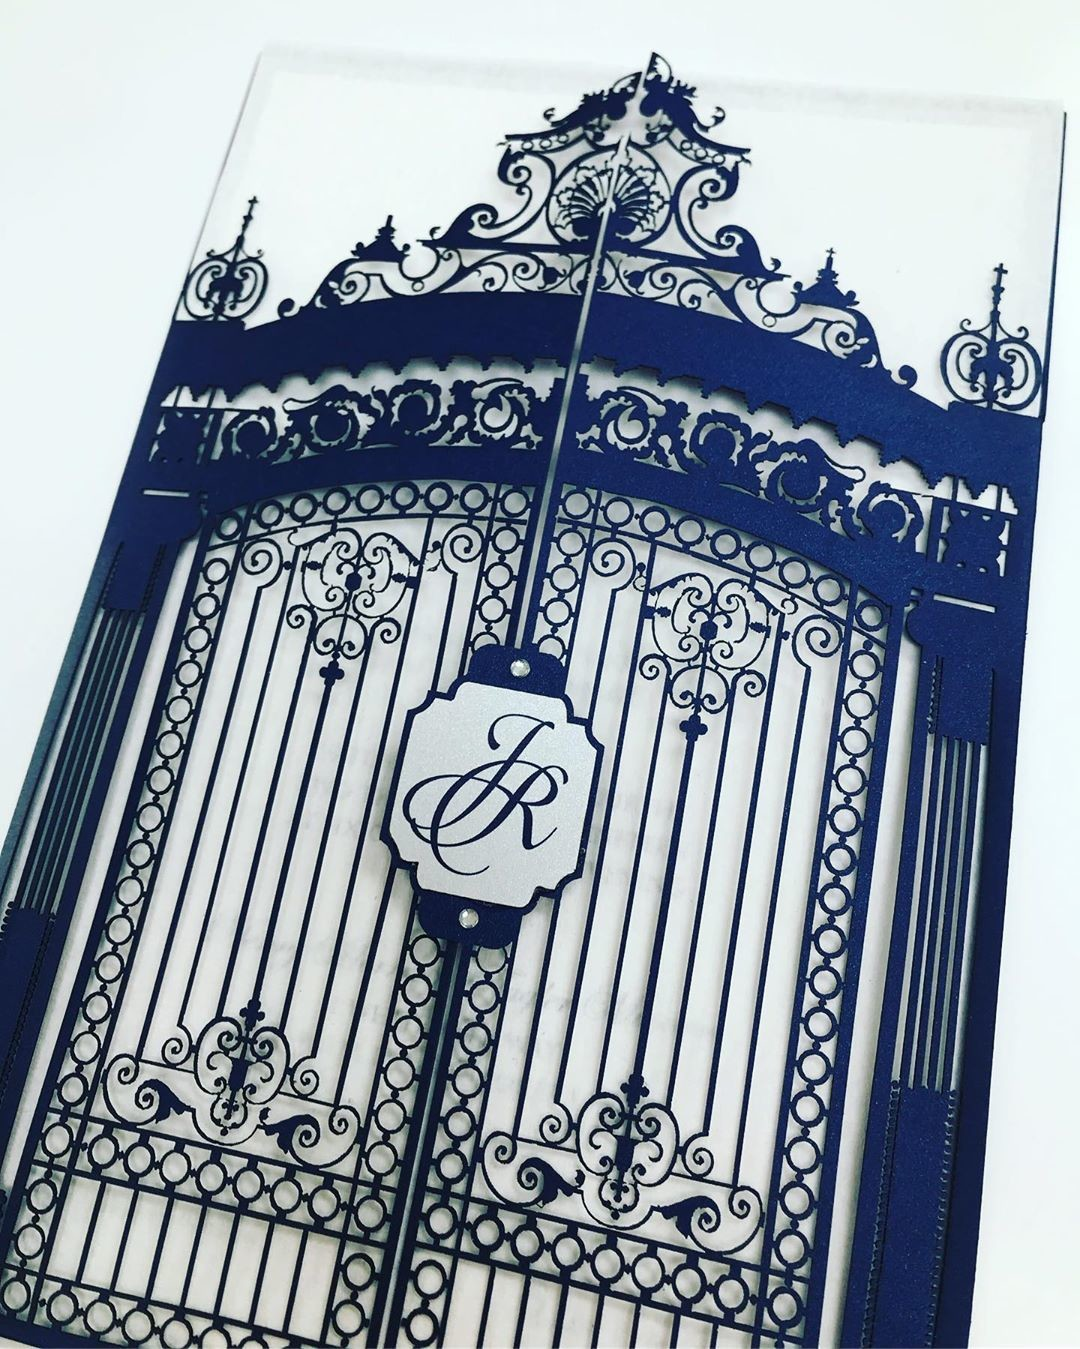 Our delicate laser cut @flaglermuseum gates looking beautiful